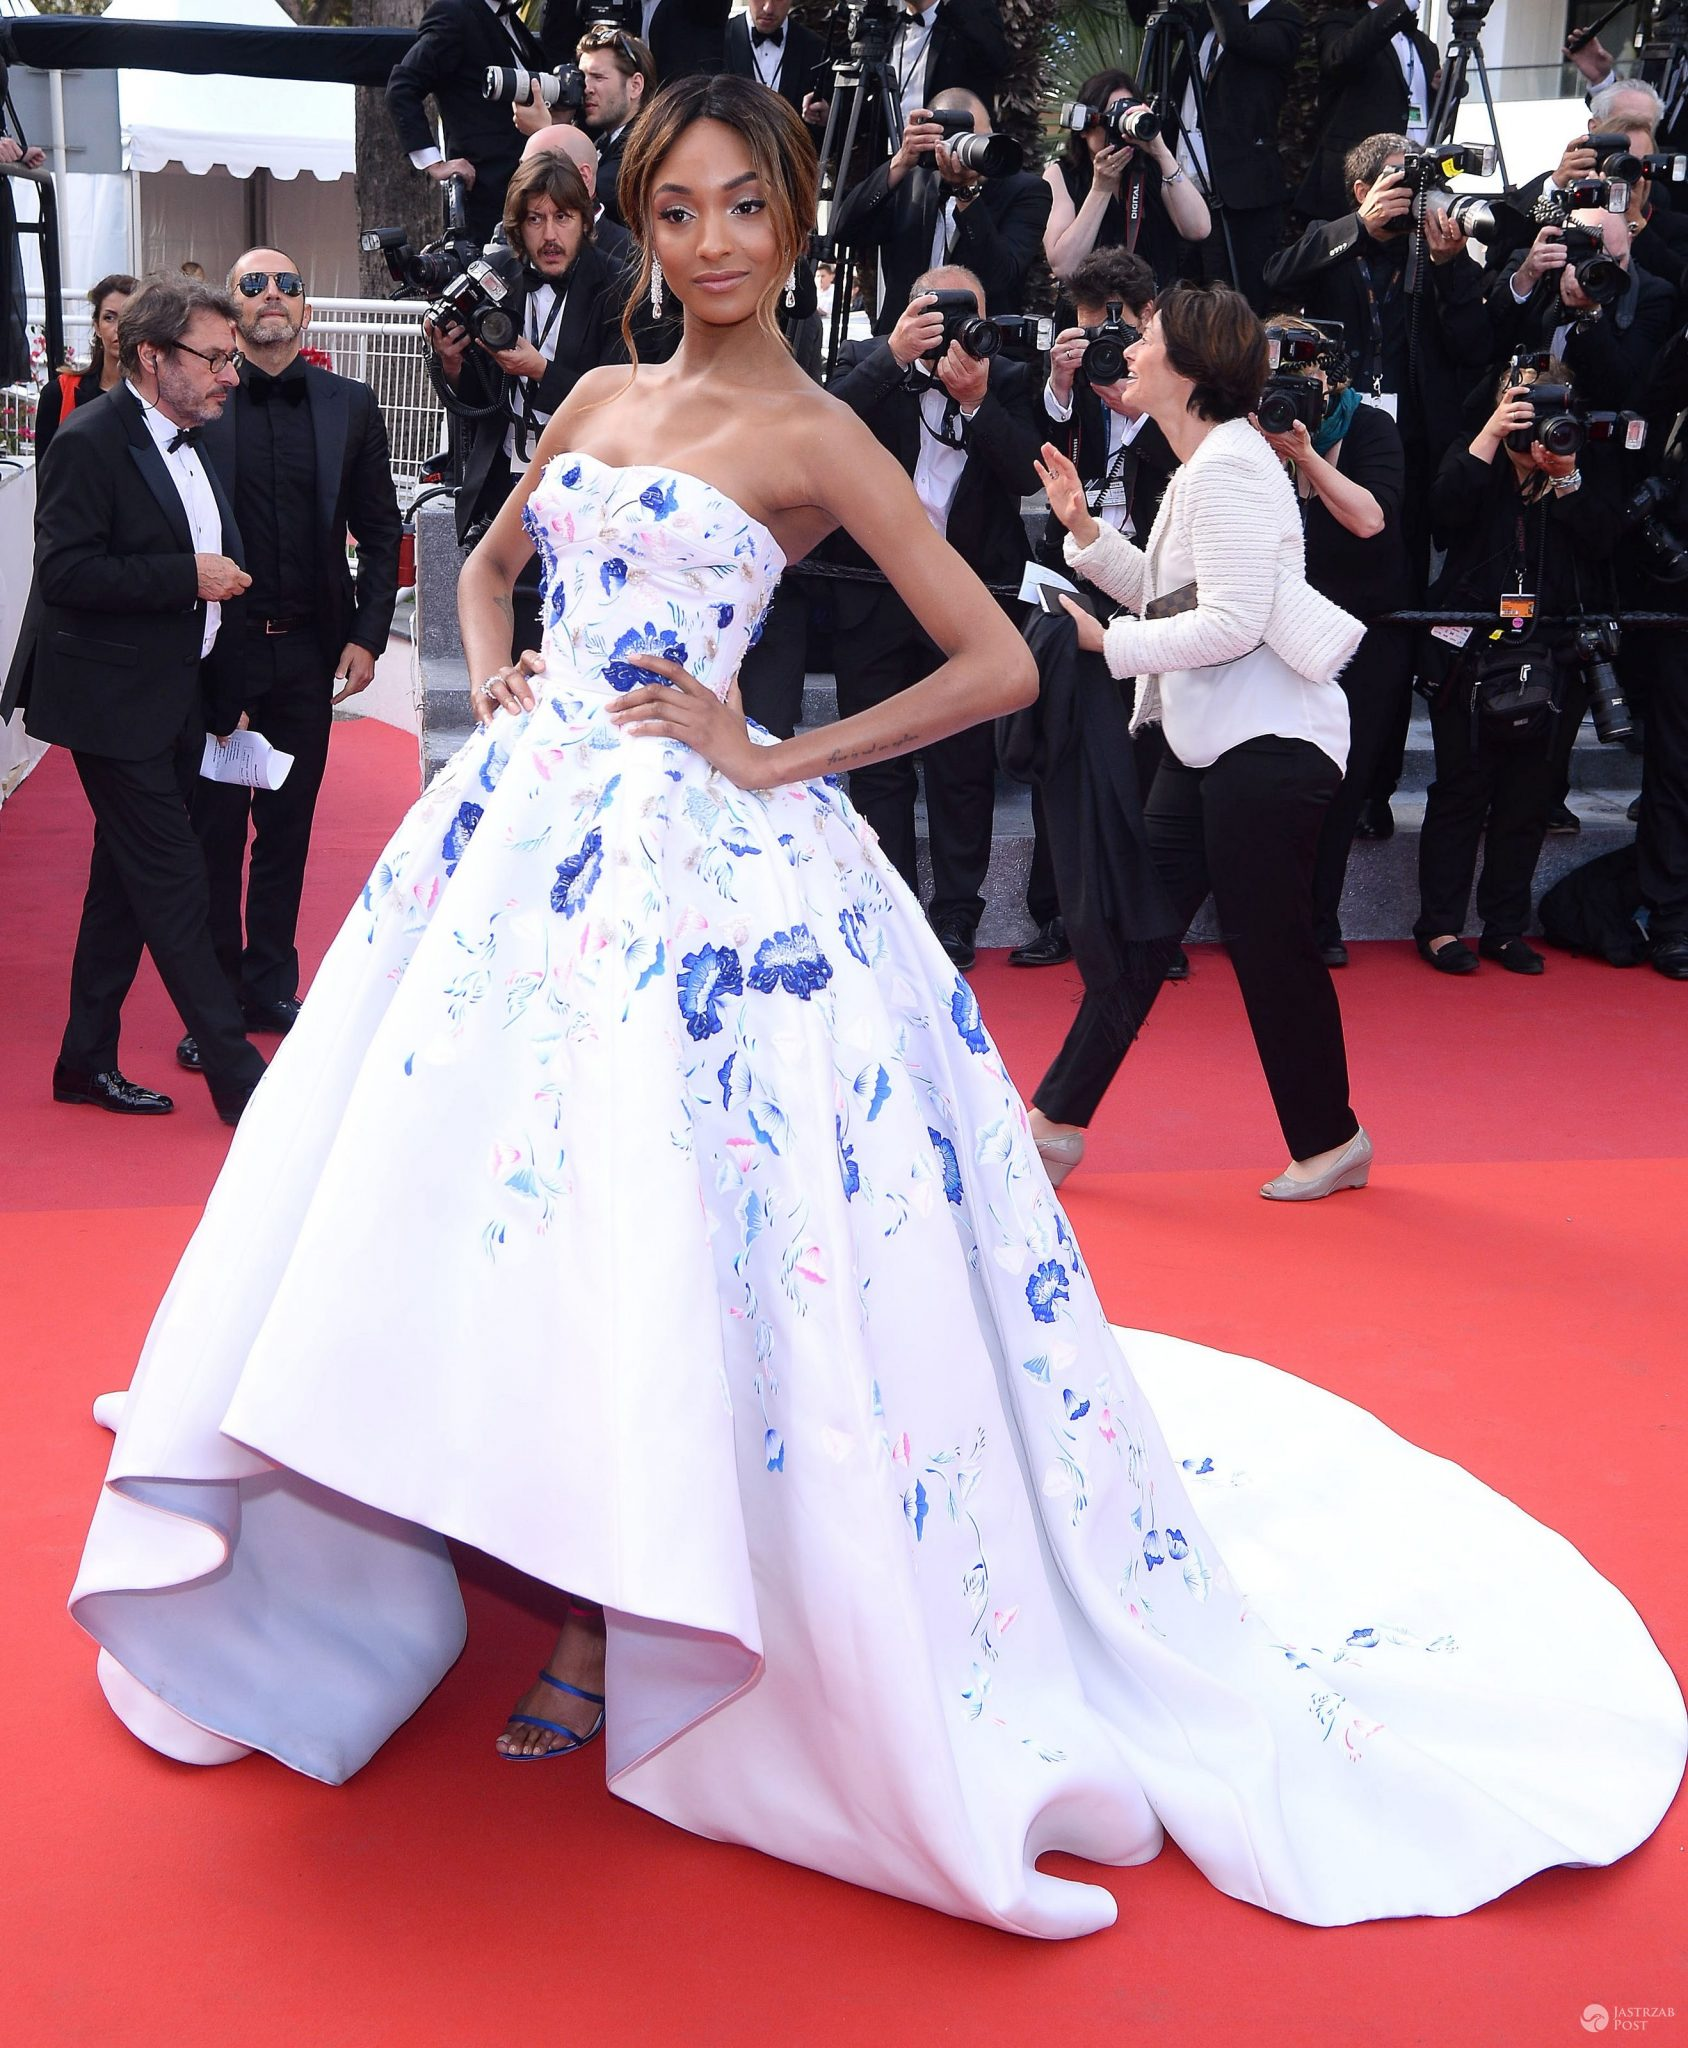 "Kreacja: Ralph & Russo. Jourdan Dunn, premiera filmu ""The Unknown Girl"" na festiwalu w Cannes 2016 (fot. ONS)"